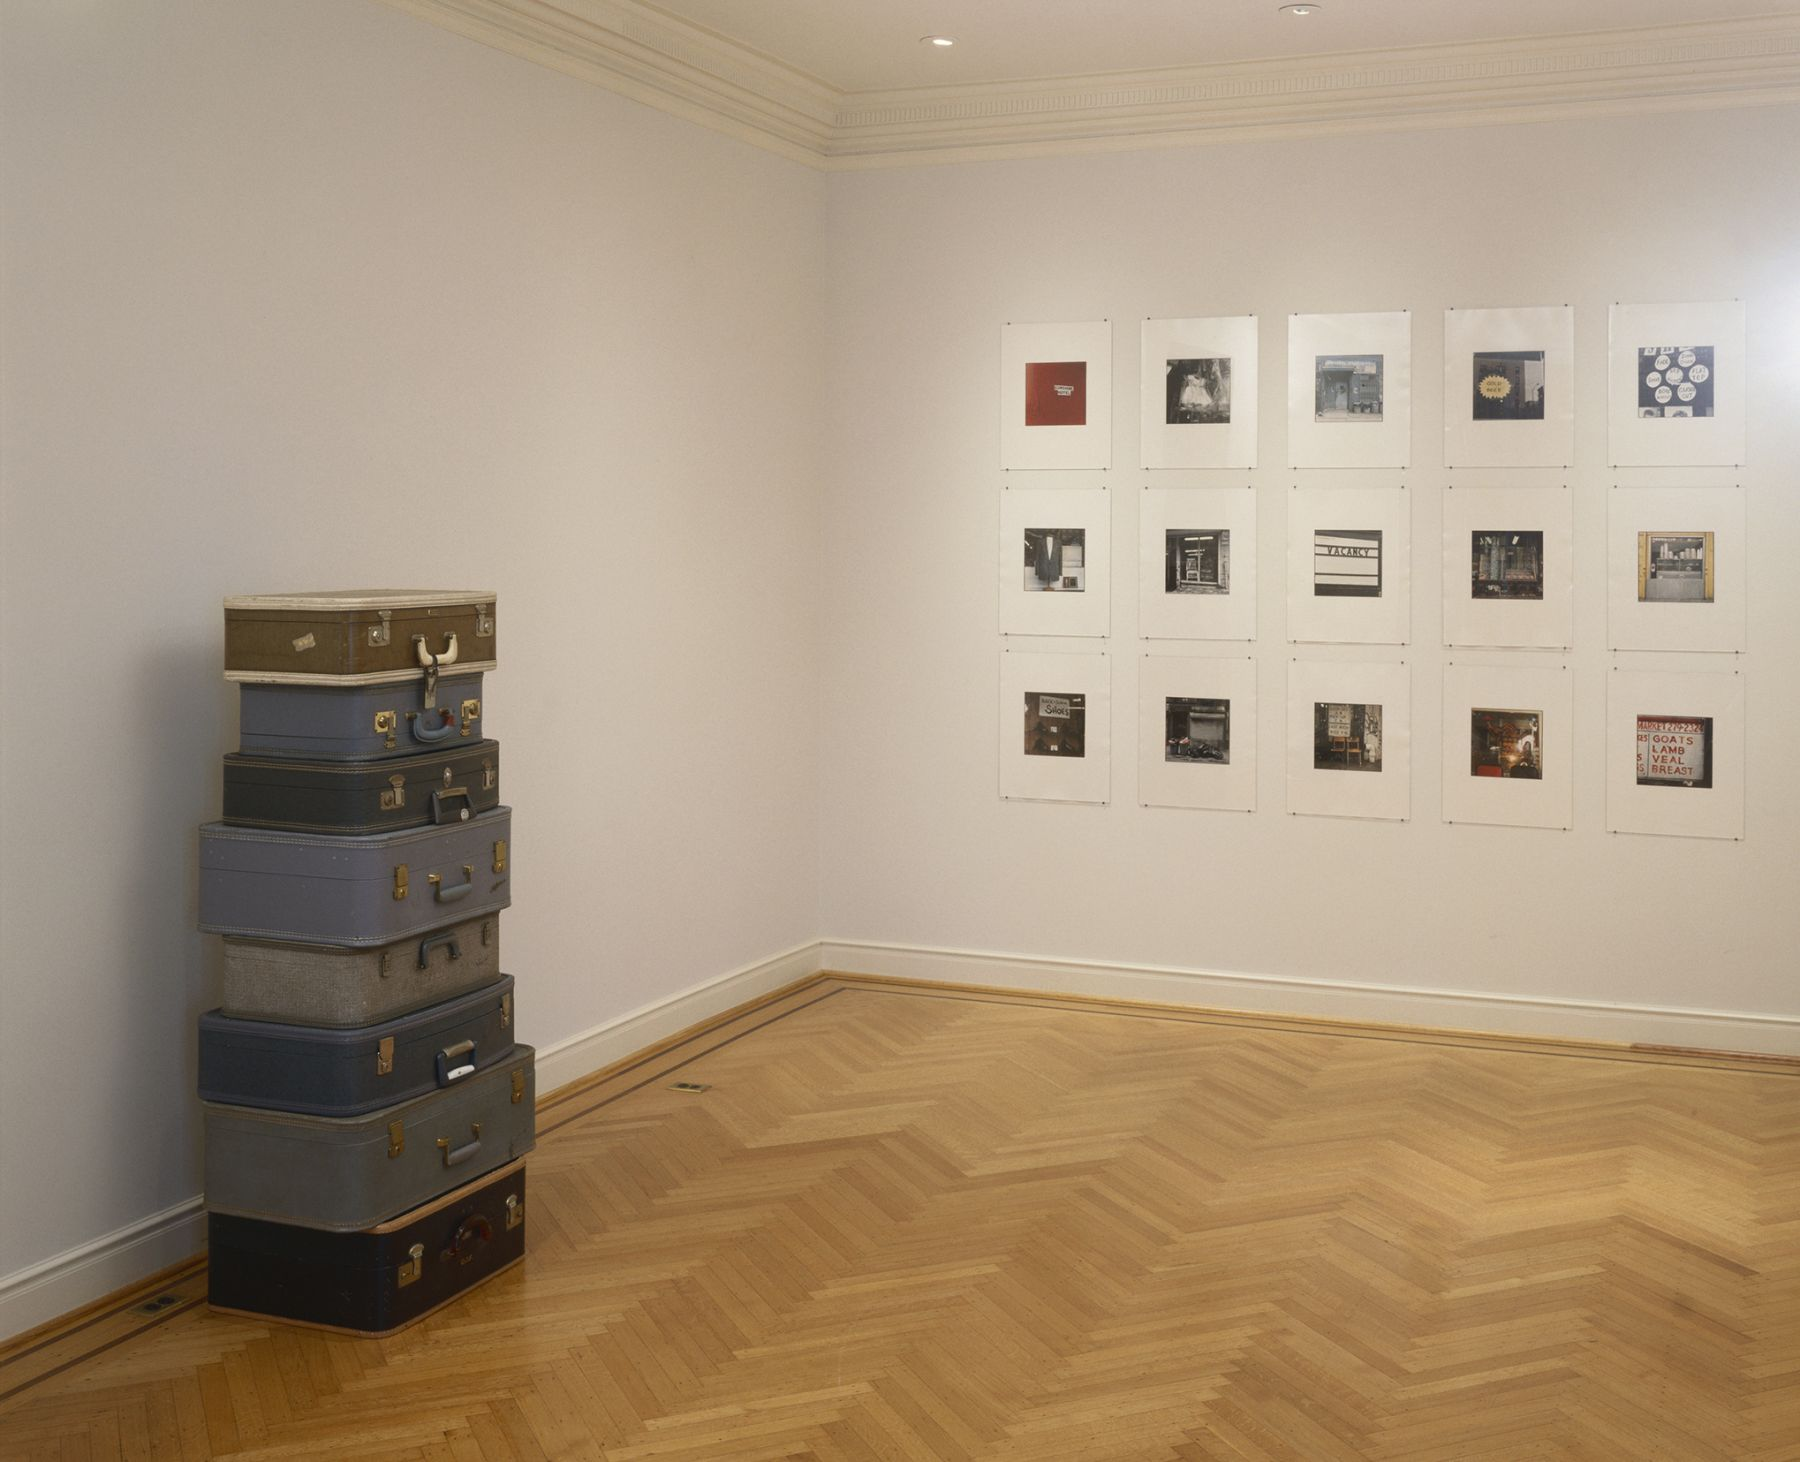 "ALT=""Zoe Leonard, Installation view, 2001, 8 Stacked suitcases and 15 photographs"""